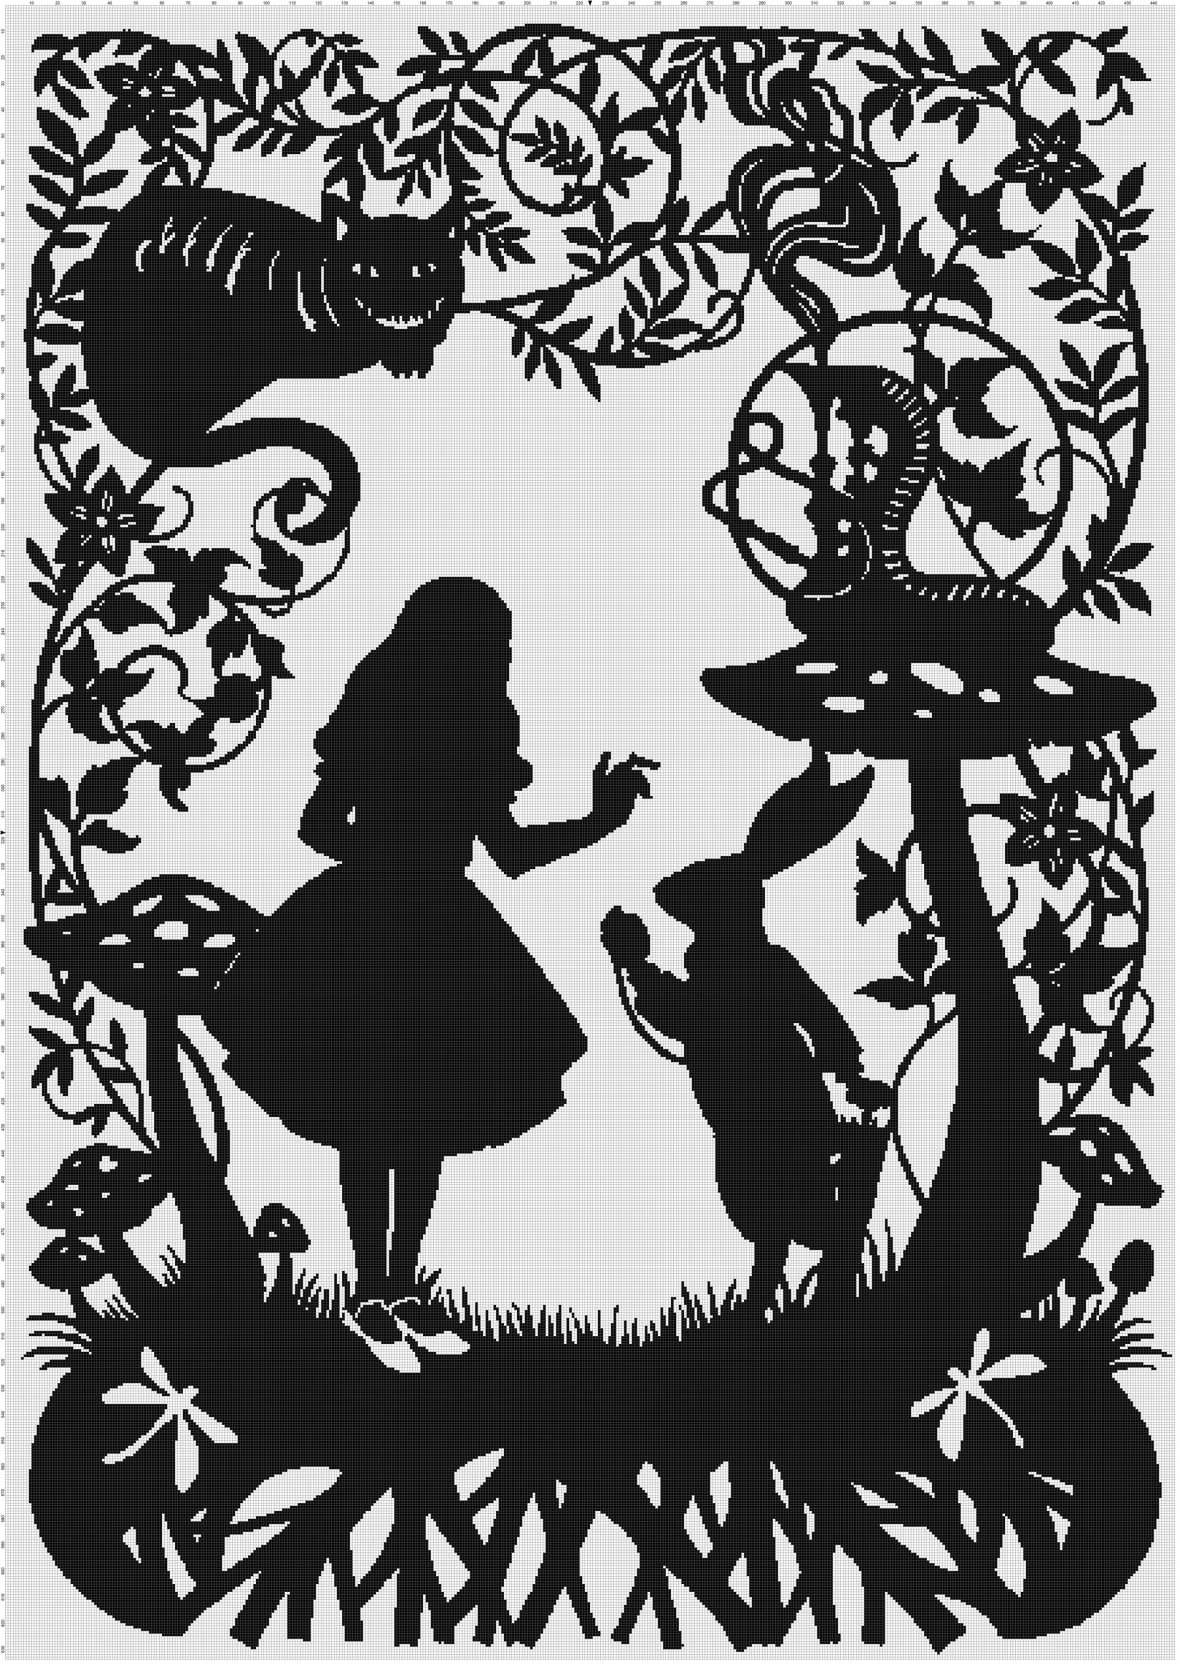 rsz_alice_in_wonderland_silhouette